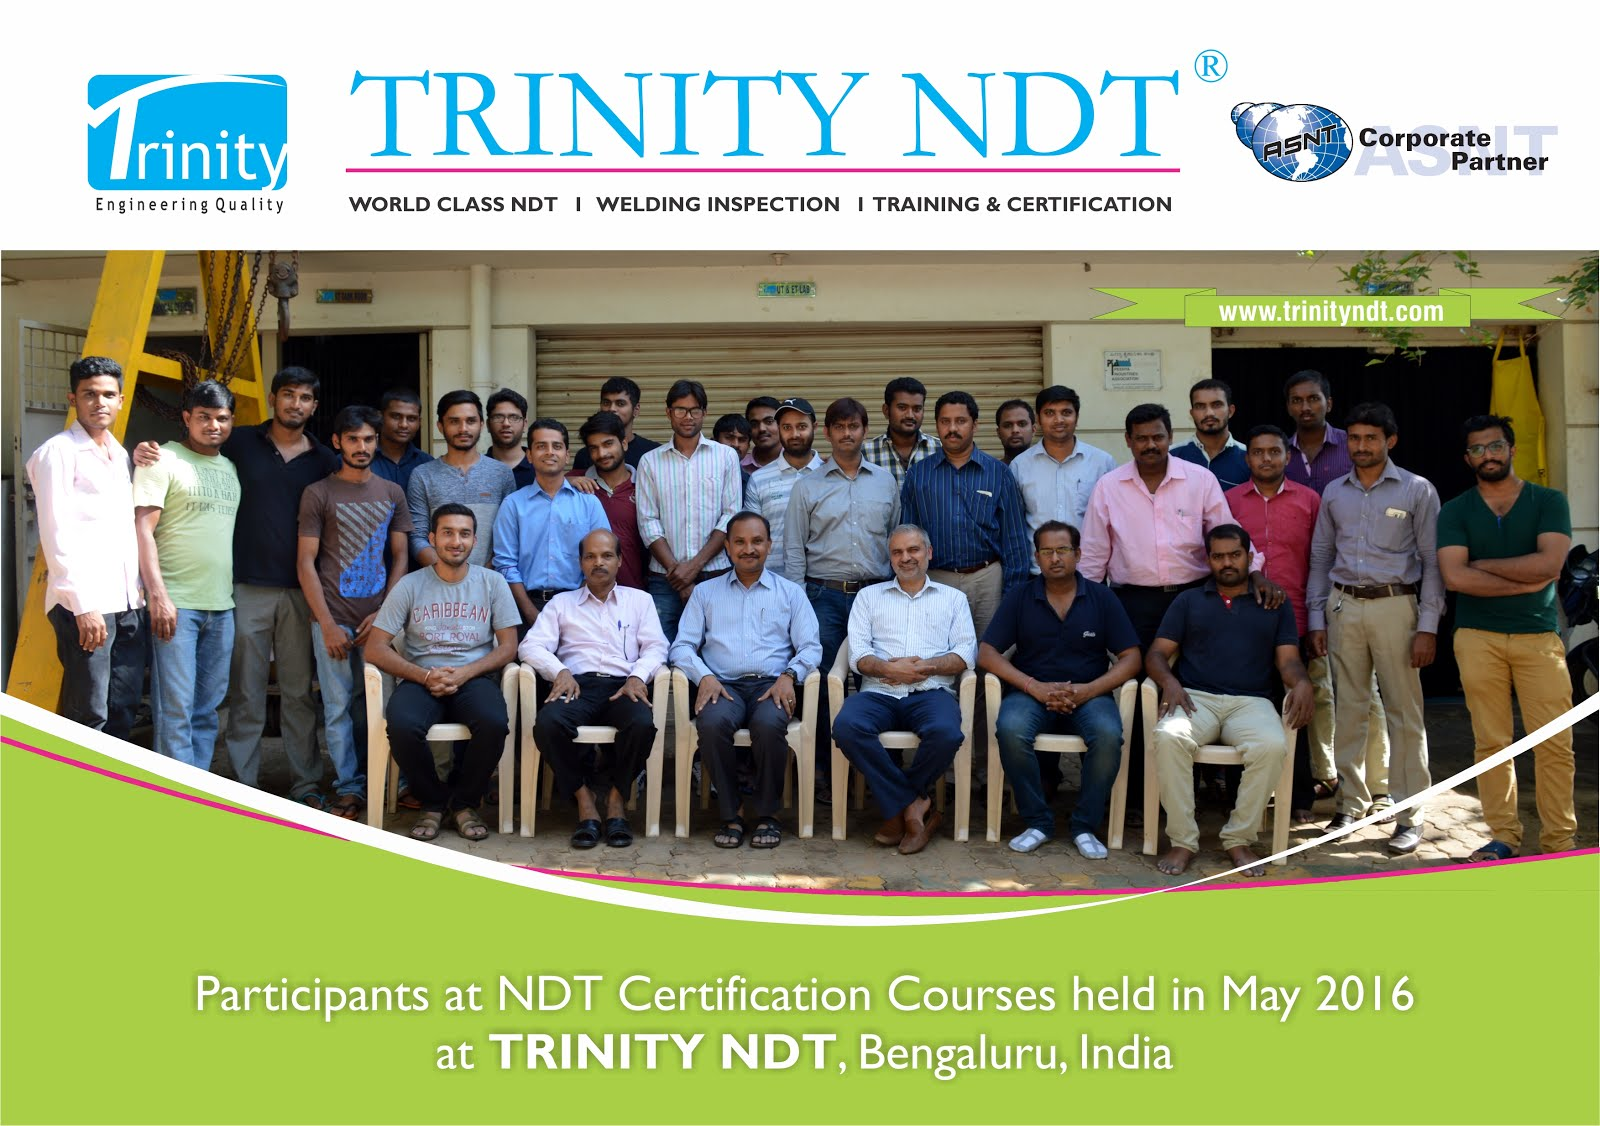 May 2016 Participants at Trinity NDT Training Courses